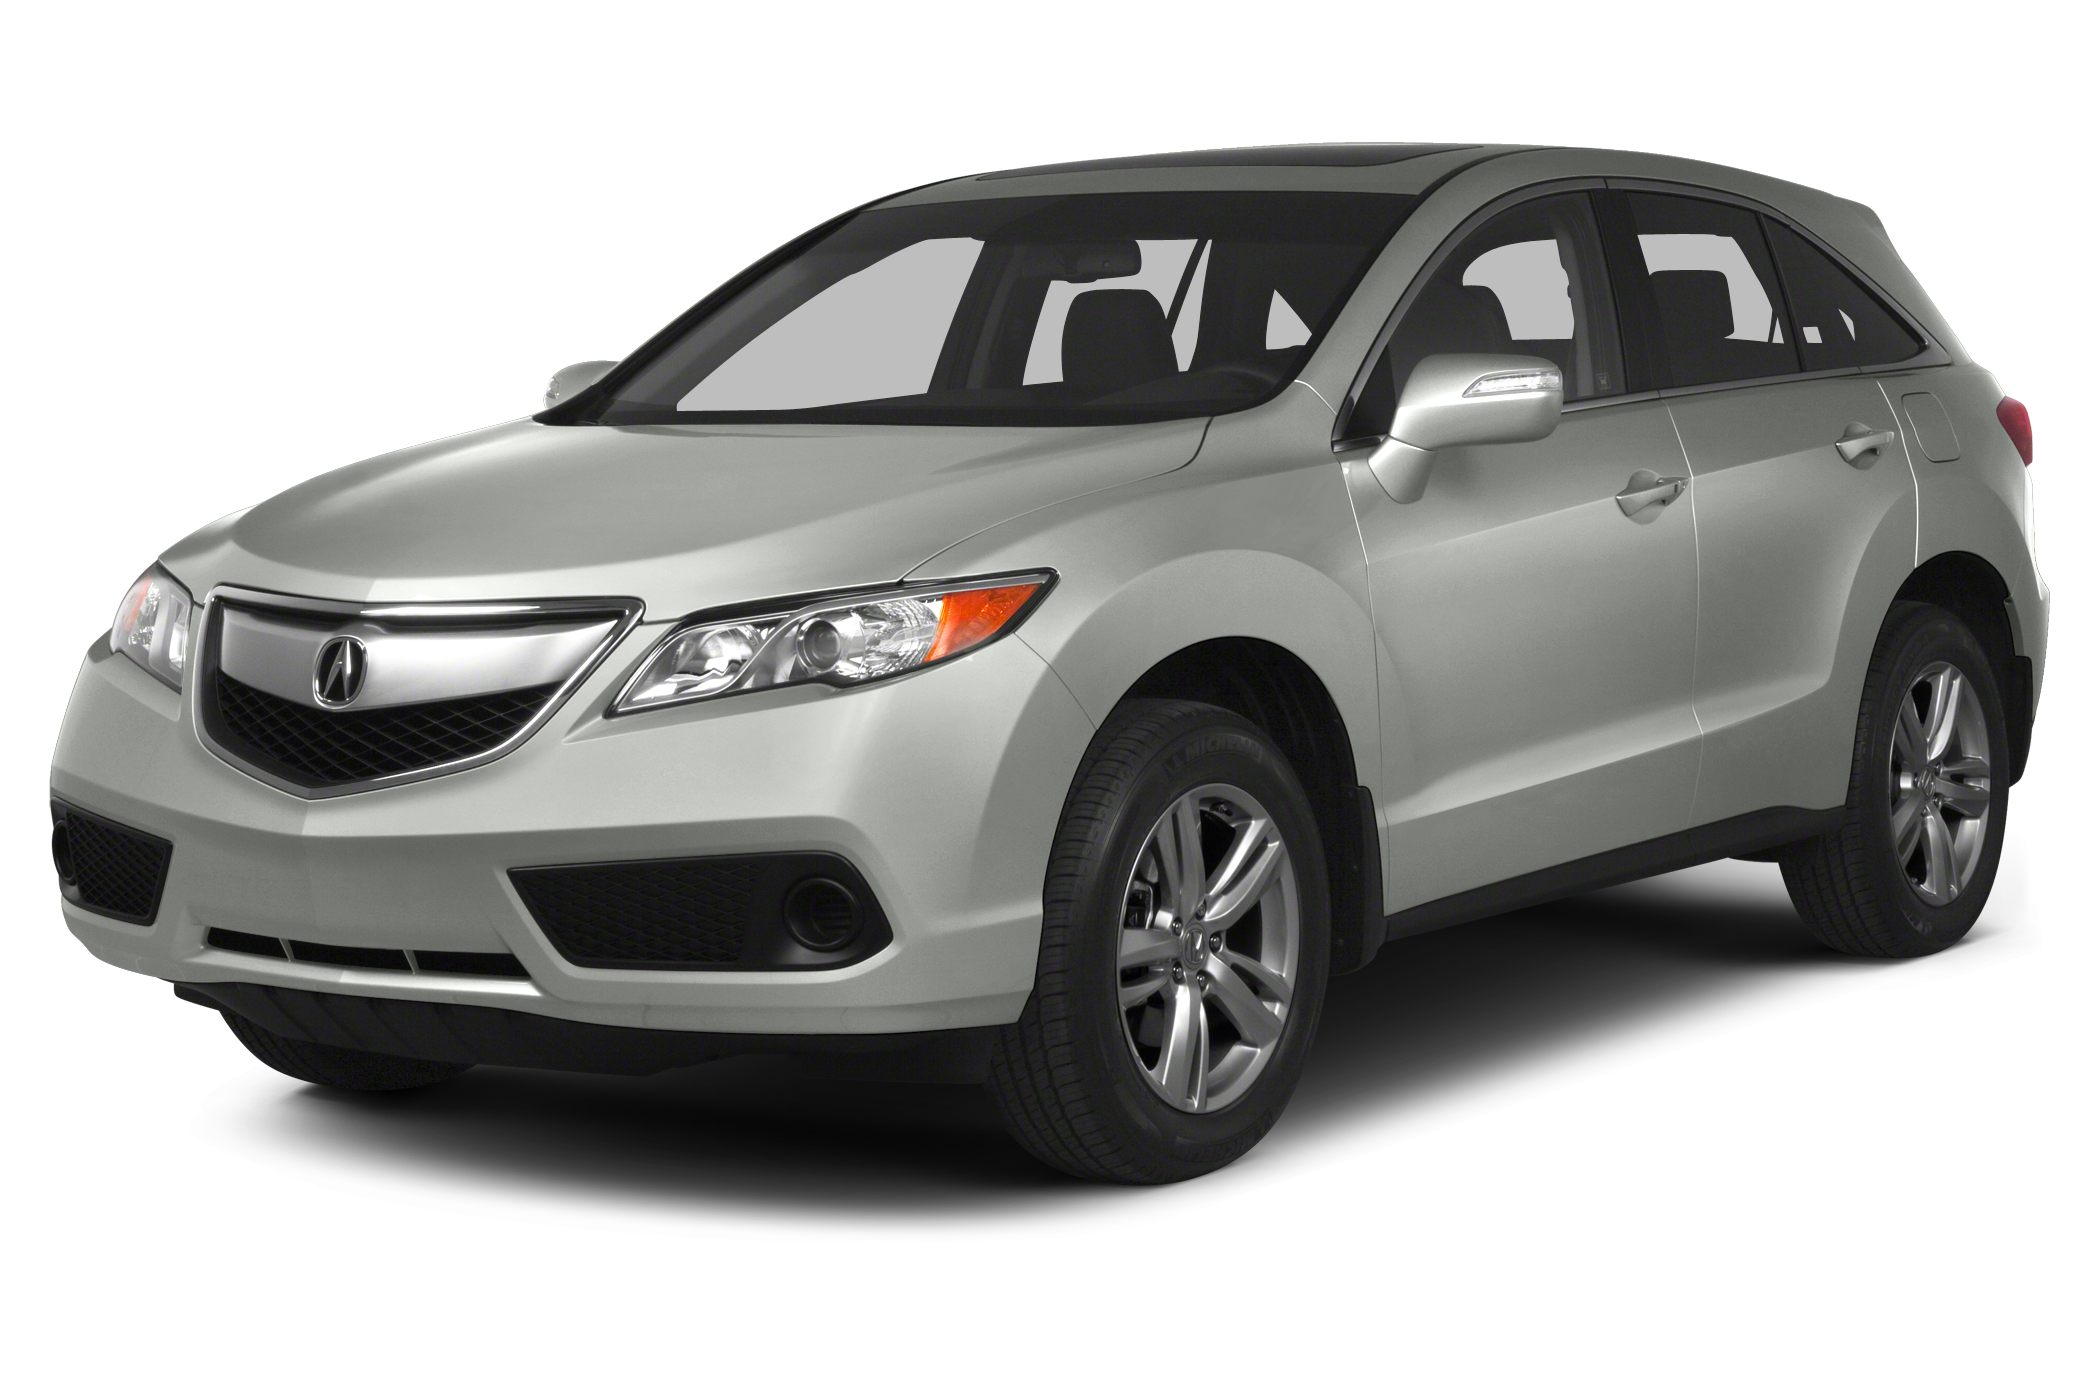 2013 Acura RDX Base SUV for sale in Escondido for $32,047 with 26,196 miles.